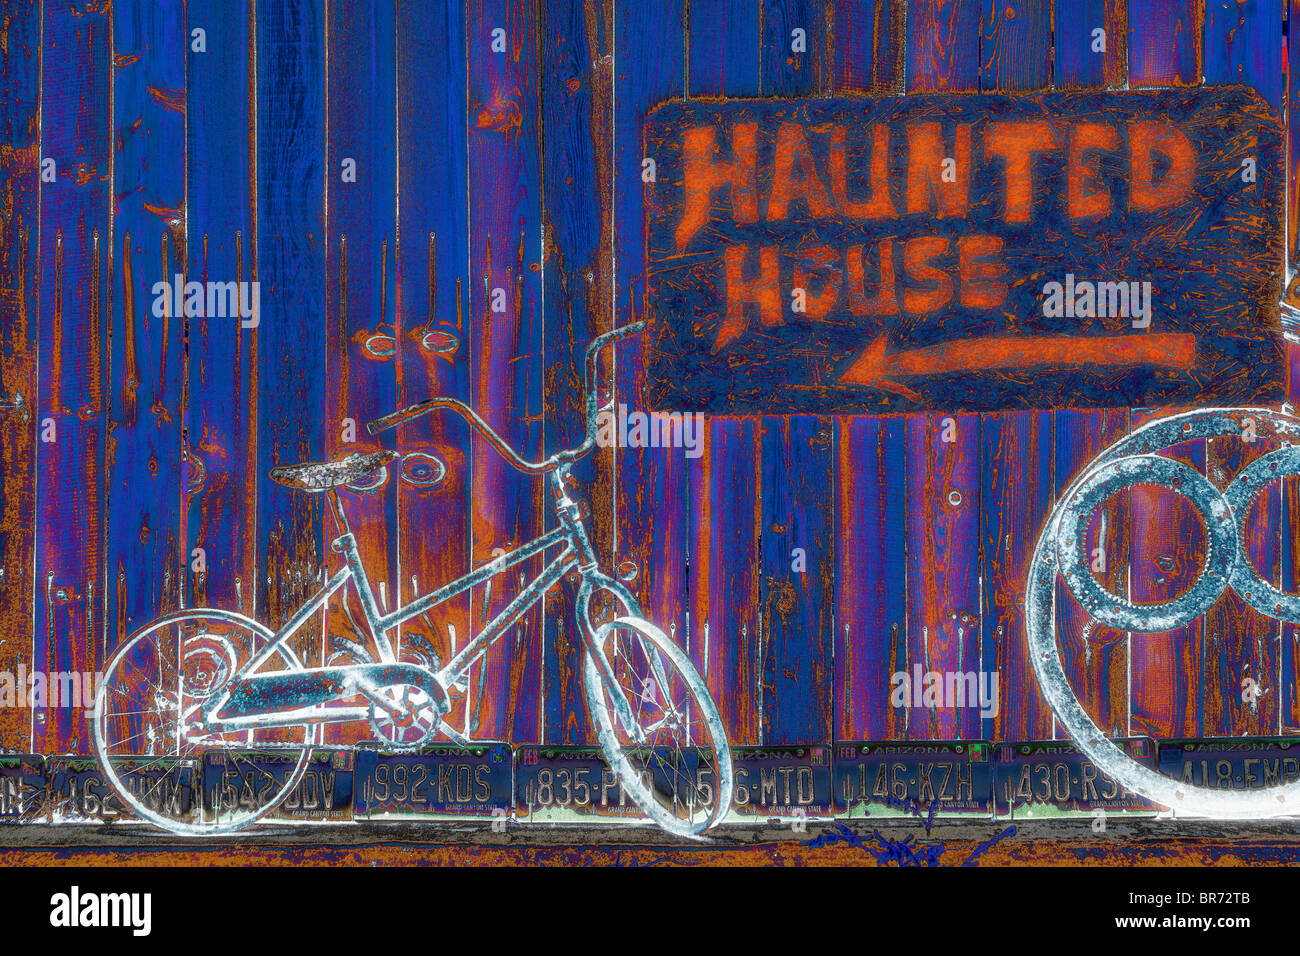 """Haunted House' e biciclette Immagini Stock"